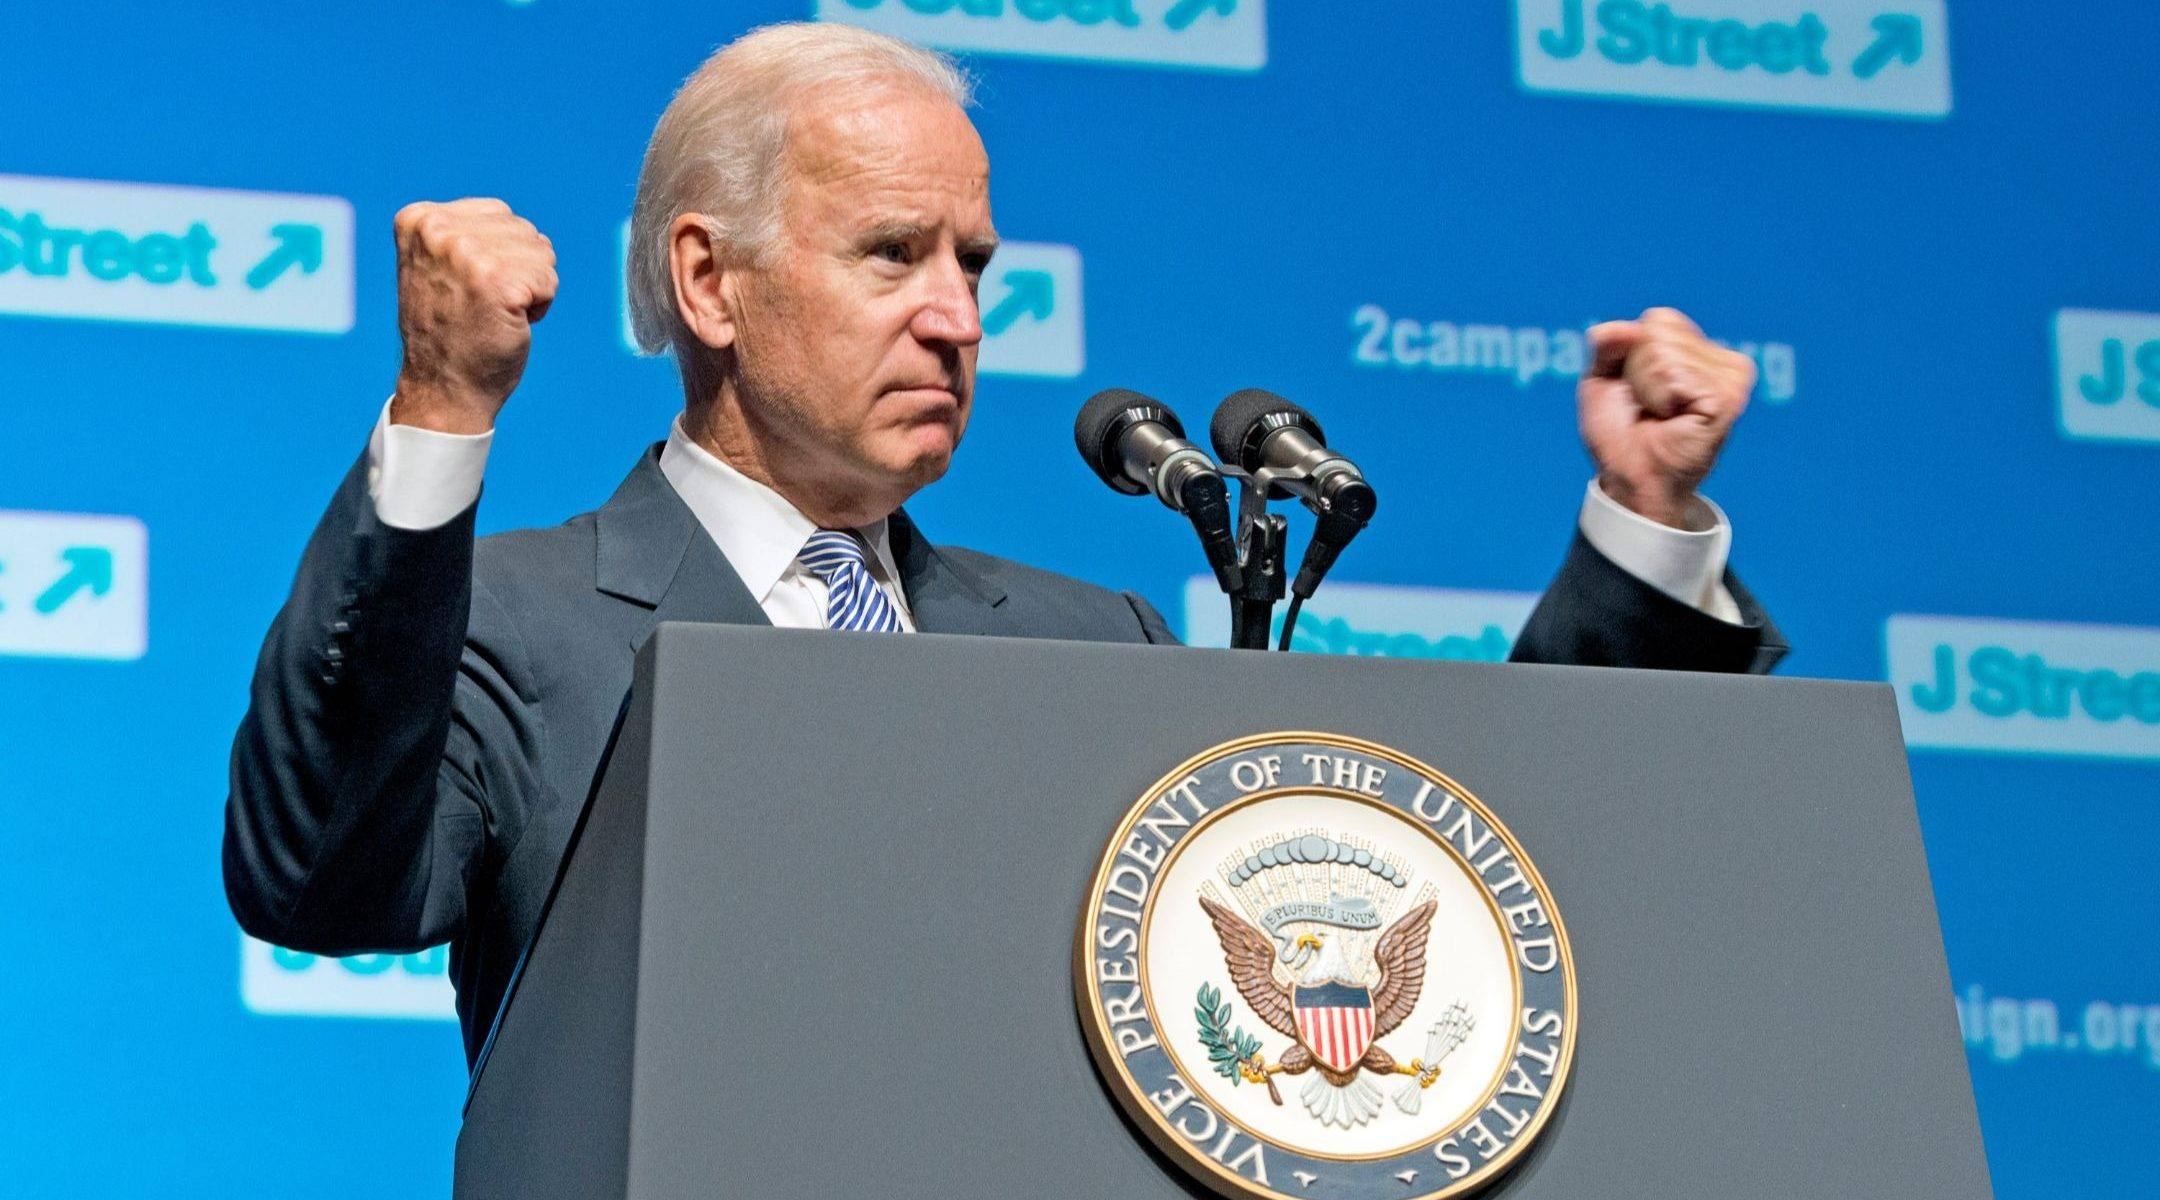 As Joe Biden welcomes J Street endorsement, a sign of the liberal pro-Israel lobby's increasing influence - Jewish Telegraphic Agency